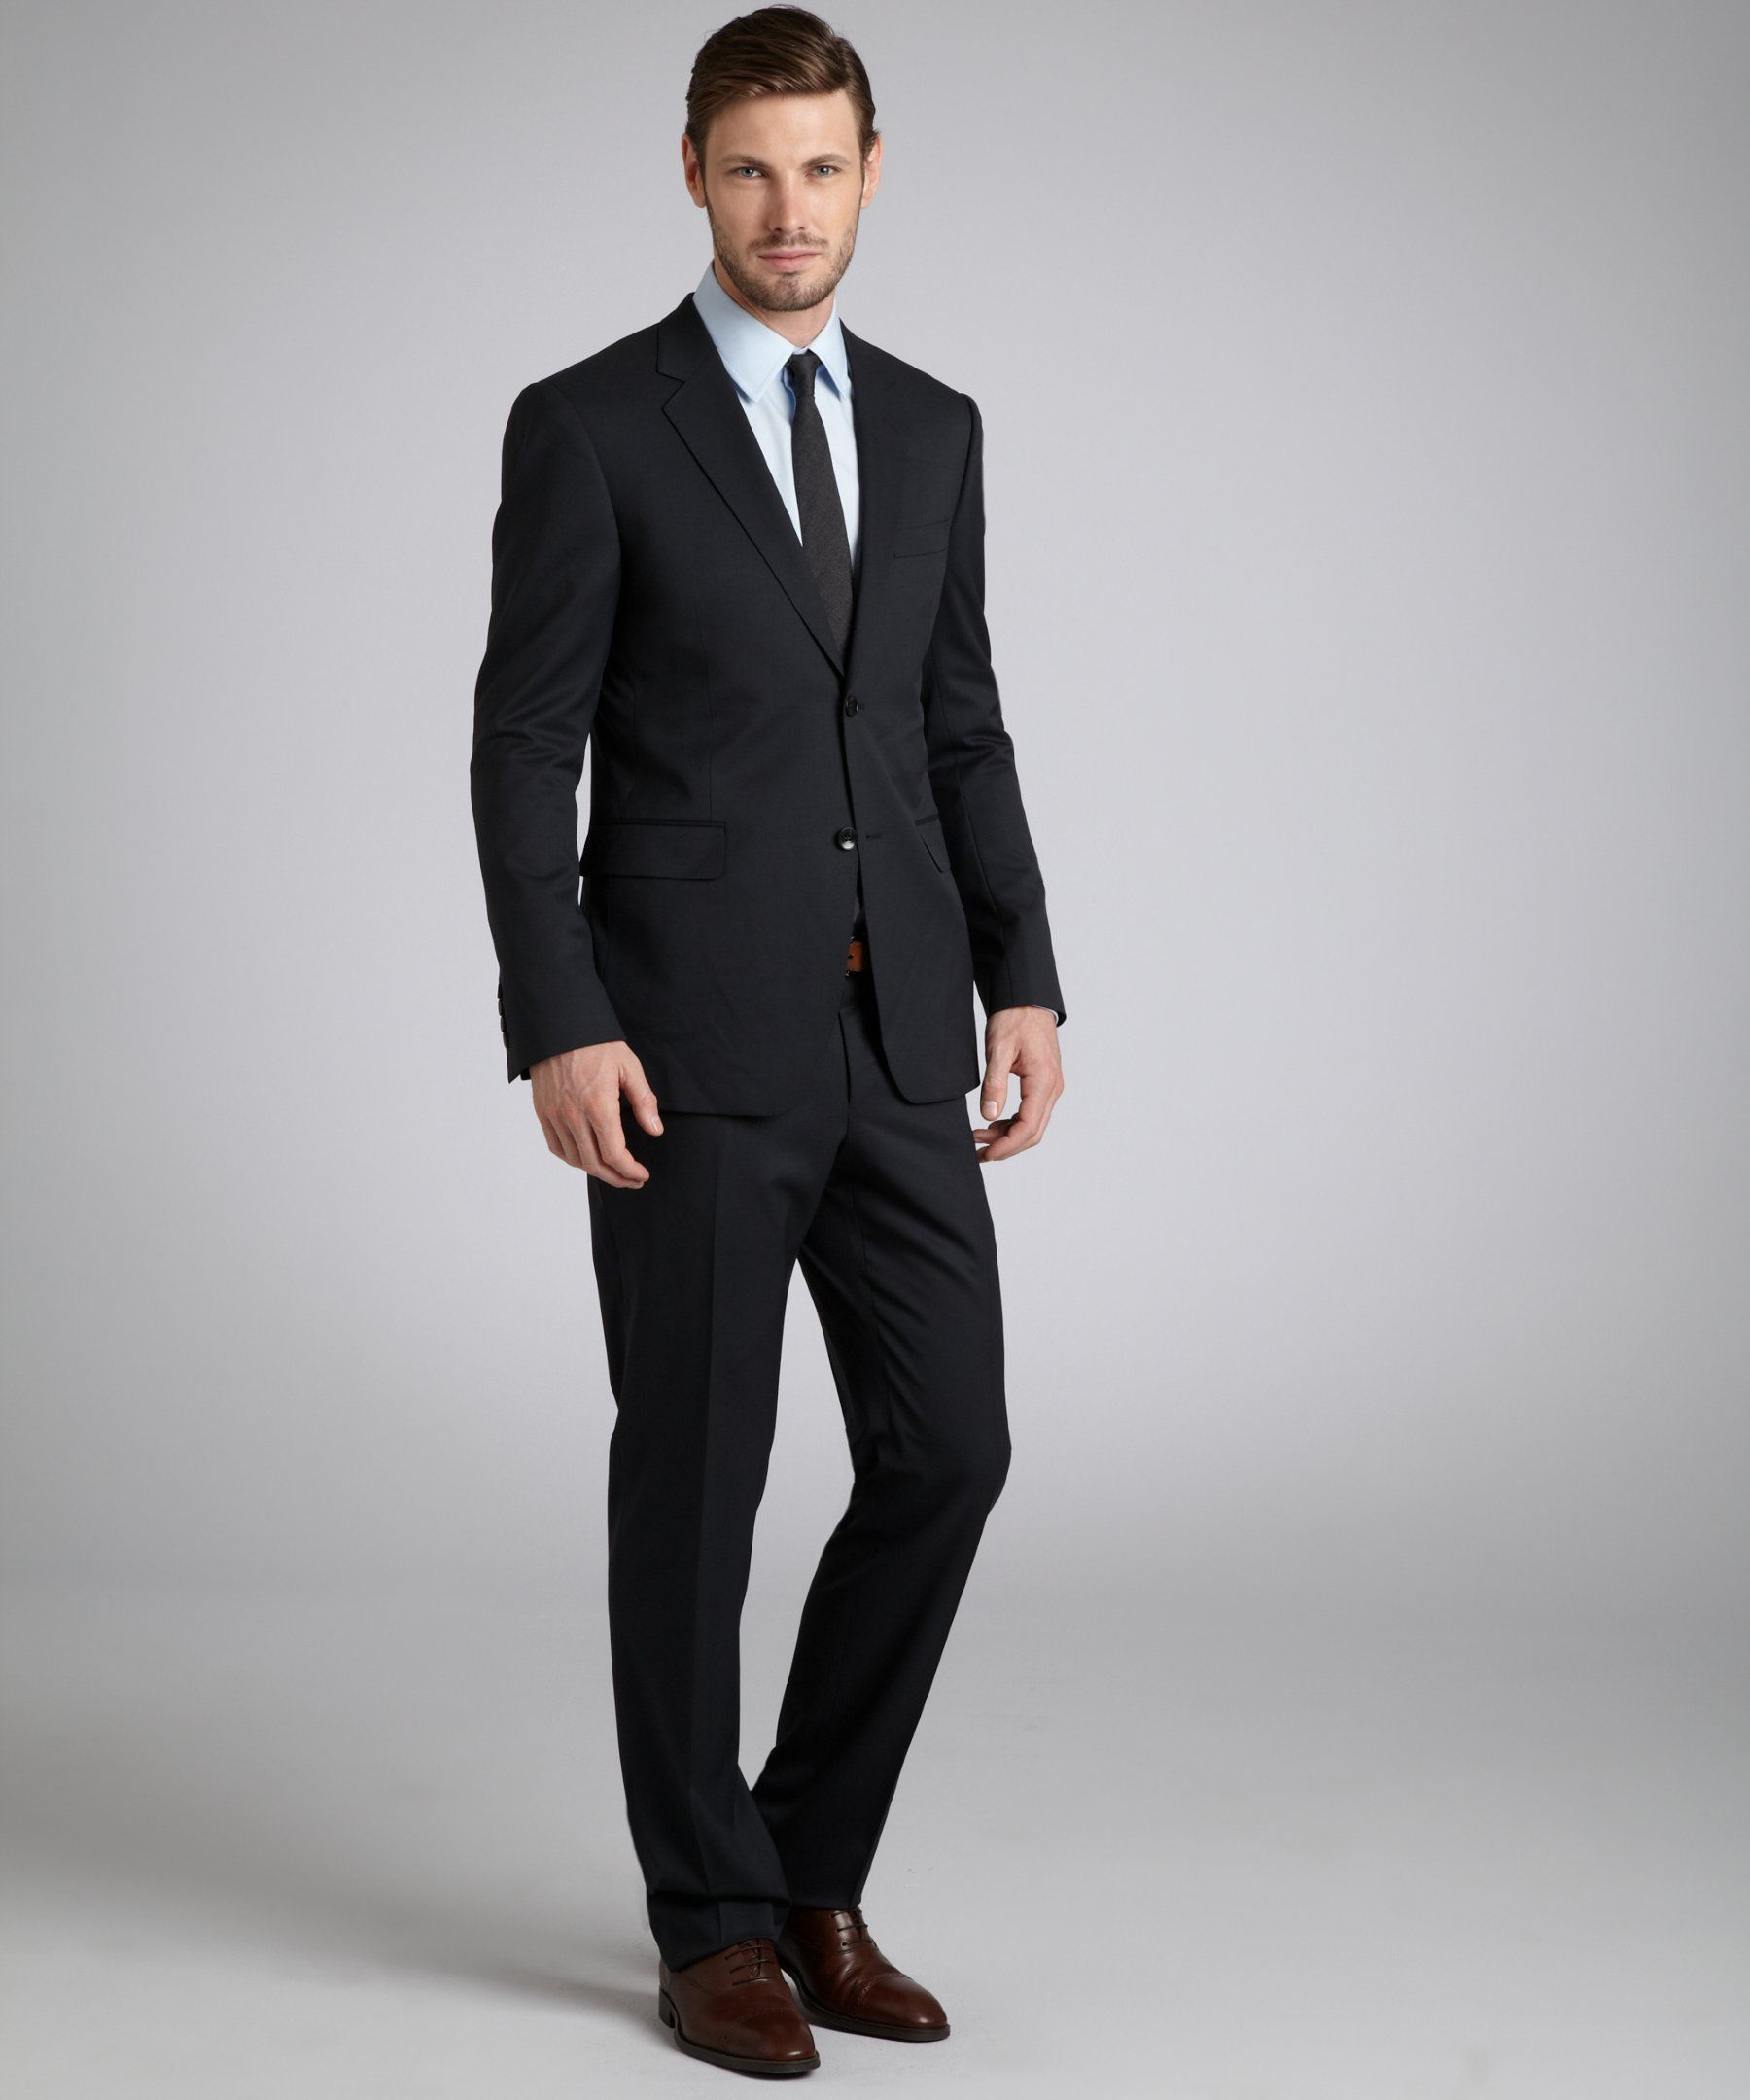 0cceb4d2a Gucci black wool two-button suit with flat front pants | BLUEFLY up to 70%  off designer brands